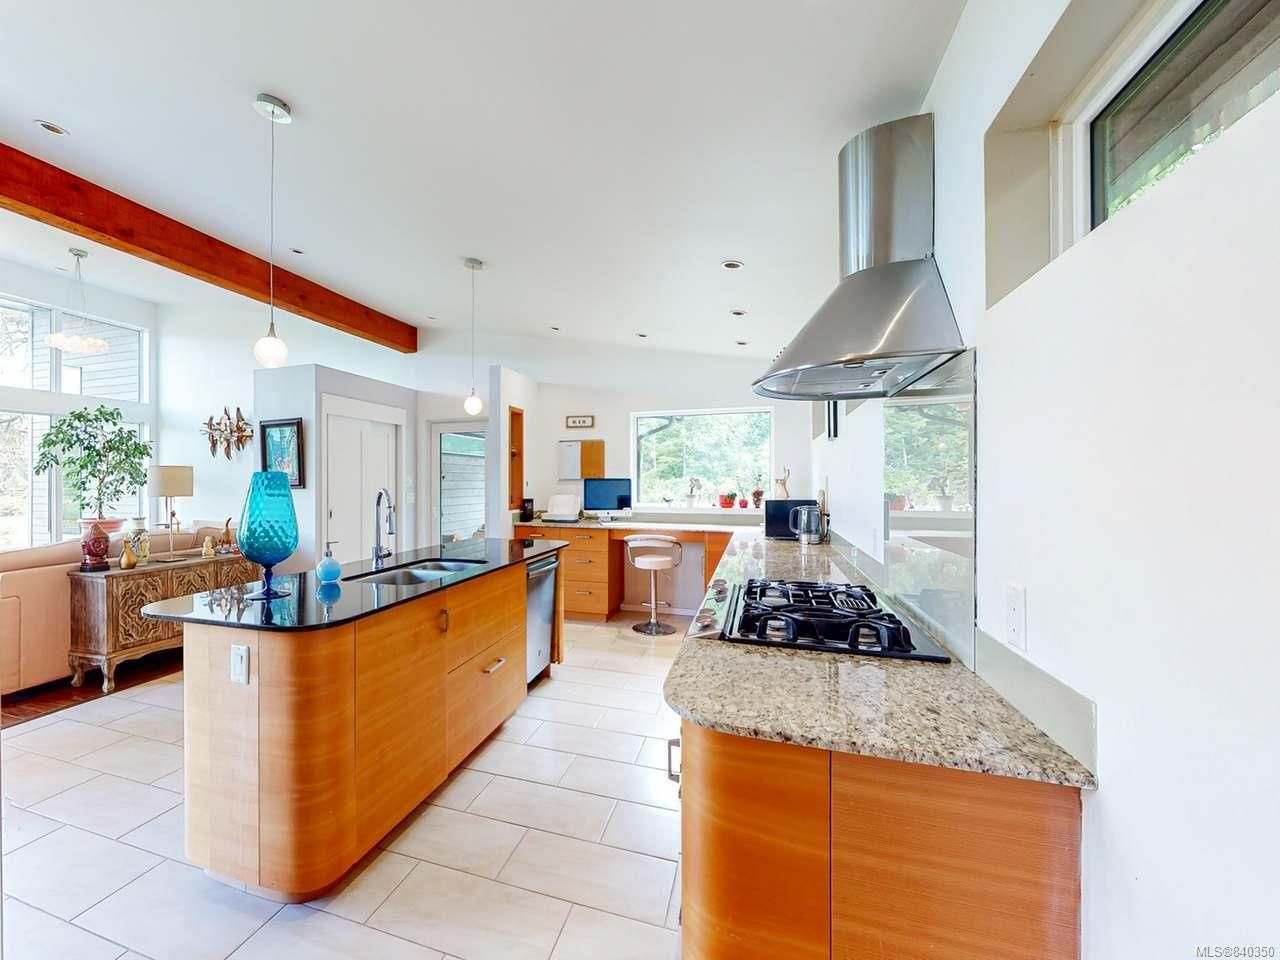 Photo 14: Photos: 1068 Helen Rd in UCLUELET: PA Ucluelet House for sale (Port Alberni)  : MLS®# 840350